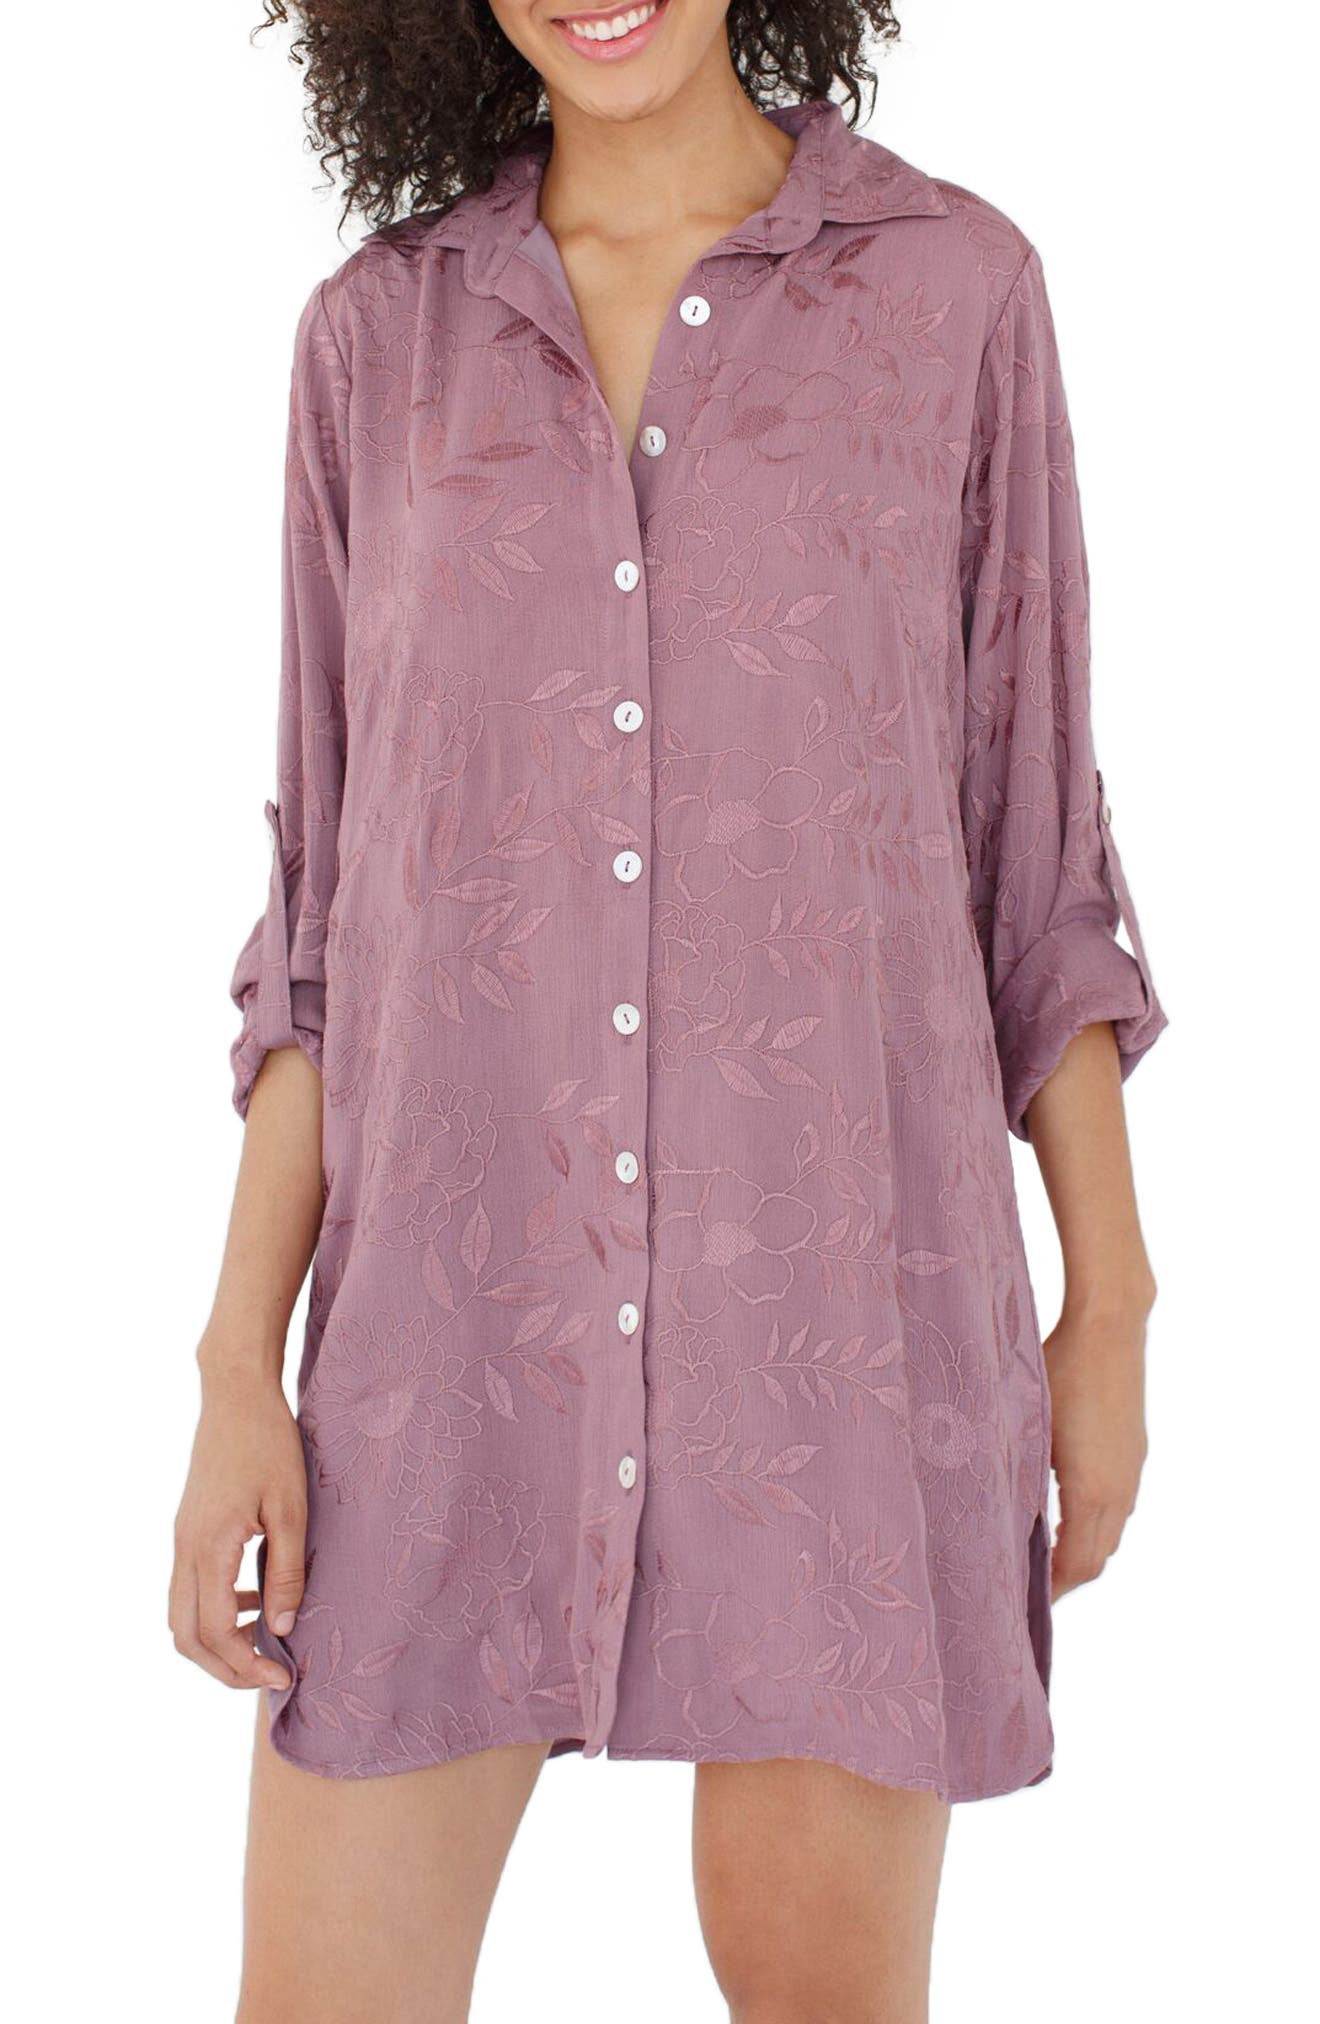 Alternate Image 1 Selected - Plum Pretty Sugar Floral Embroidered Nightshirt